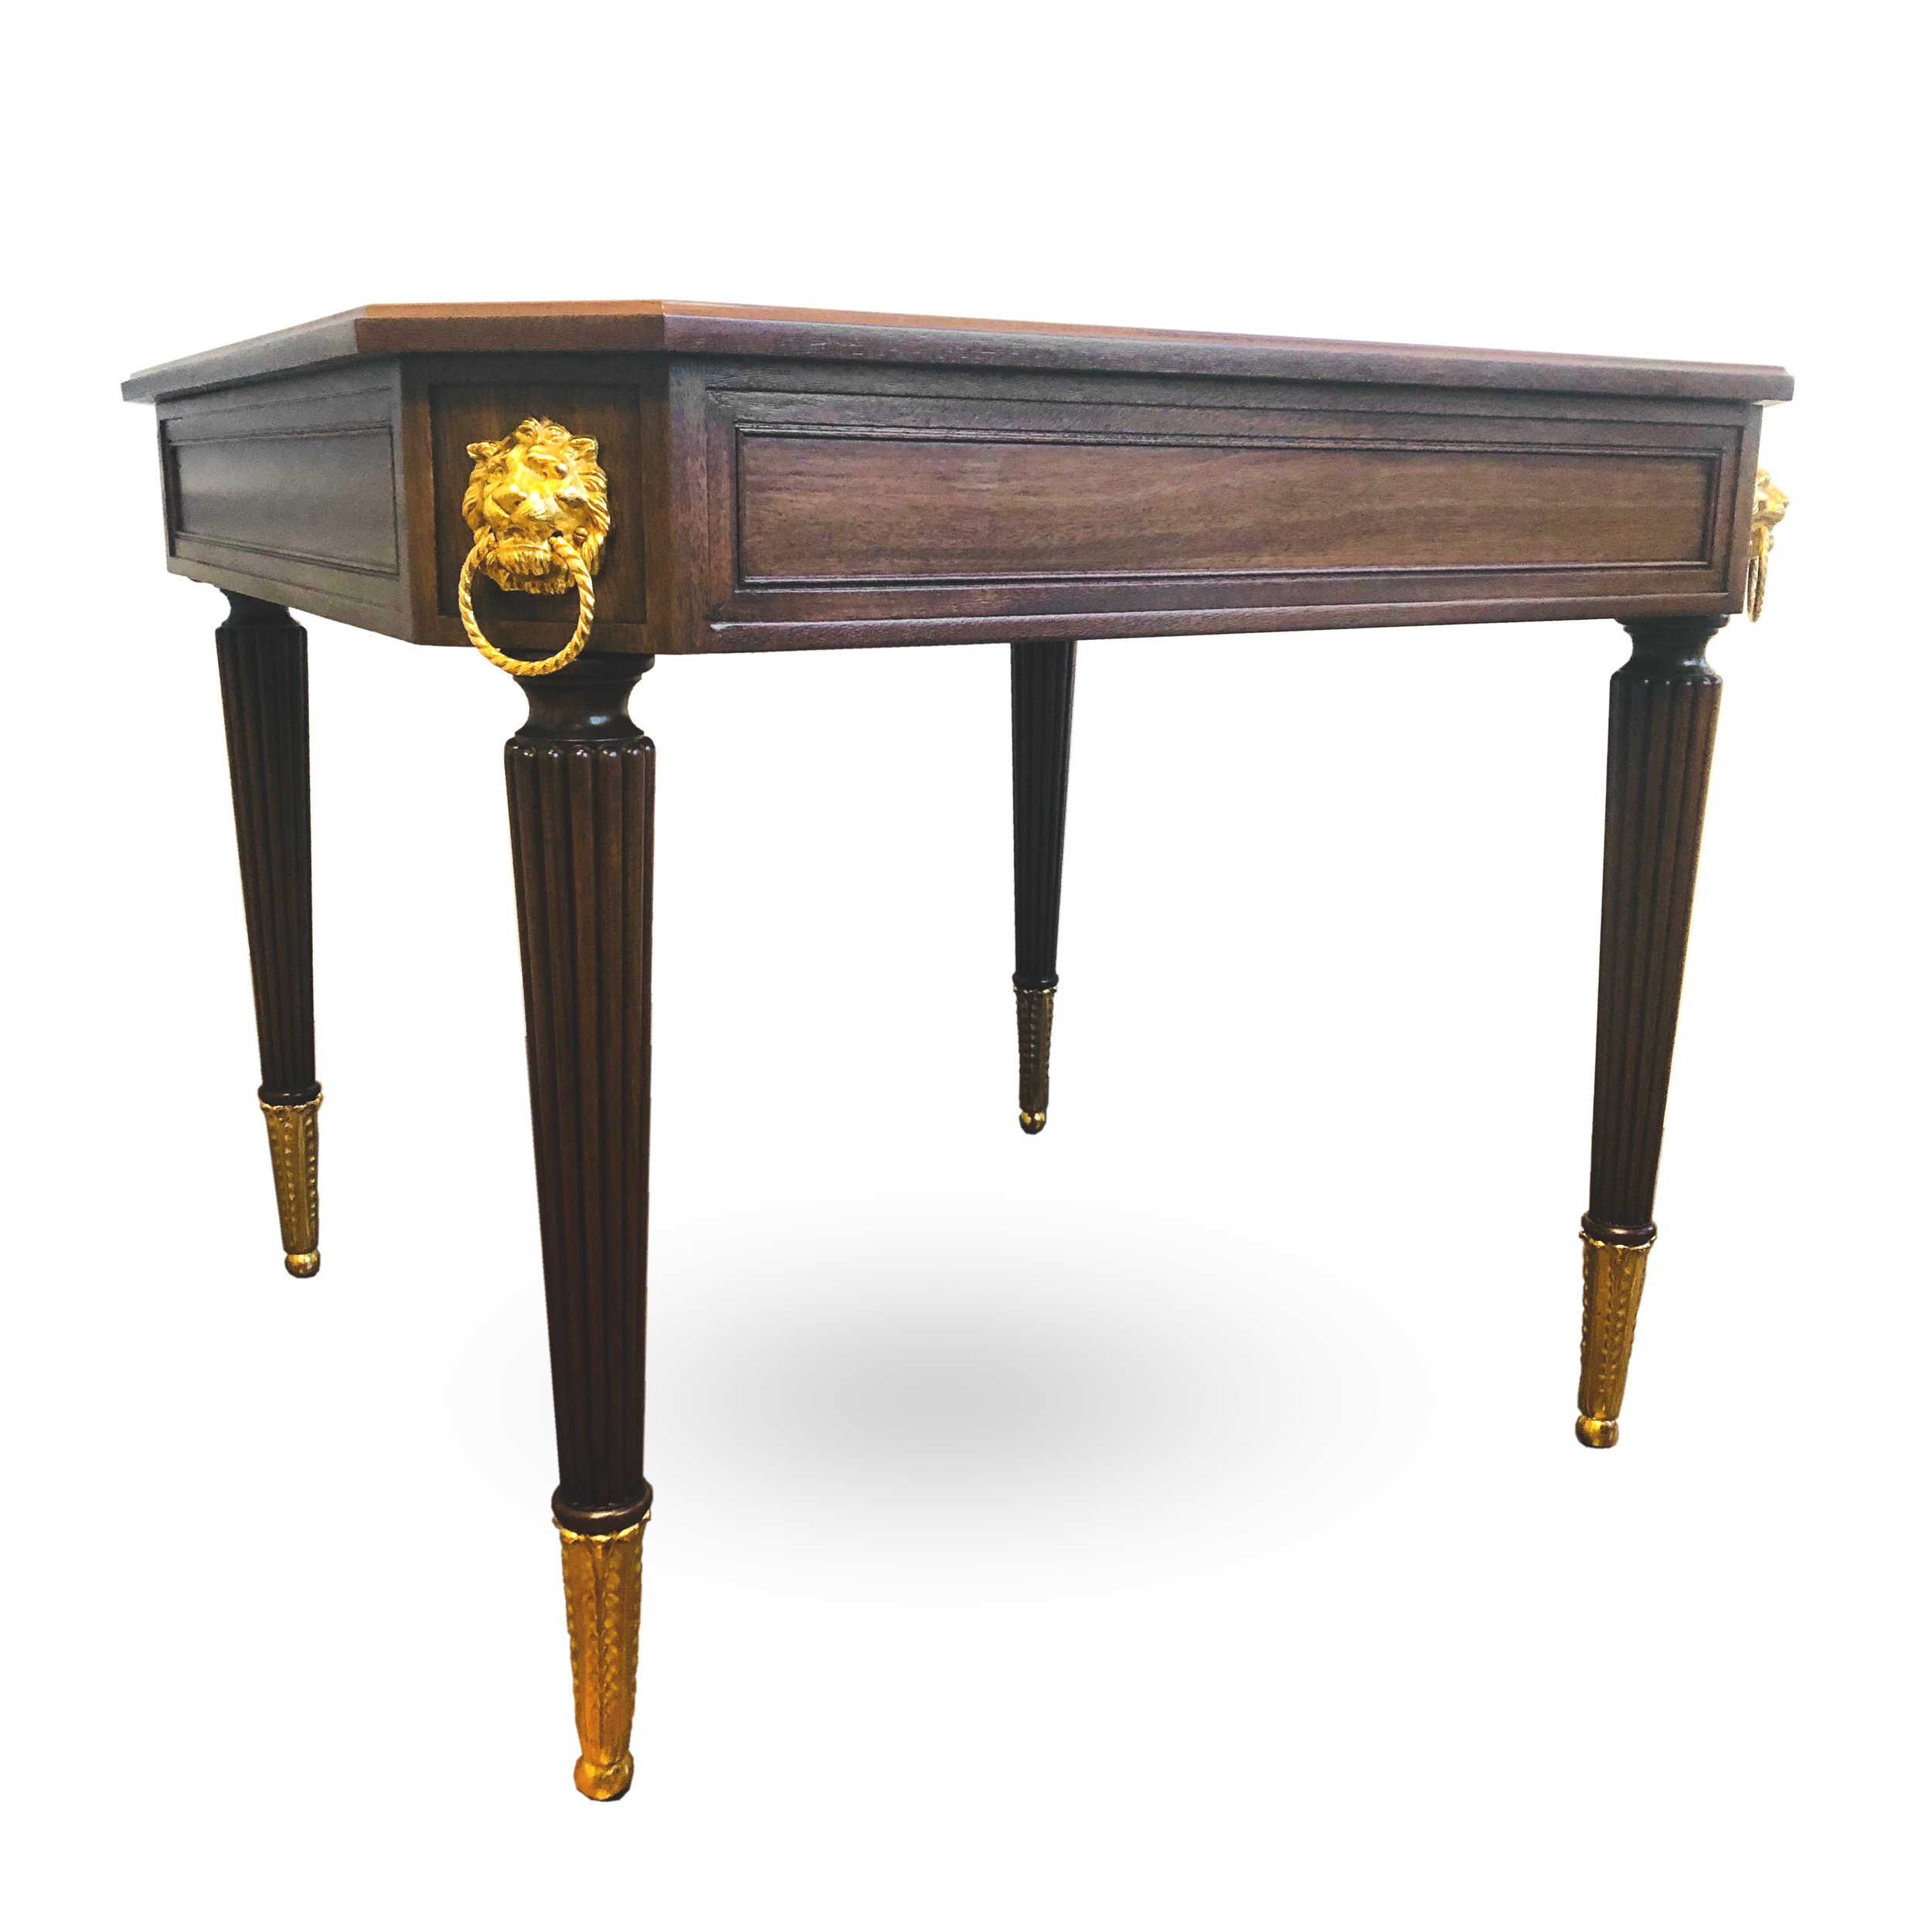 R619-English-Regency-Style-Desk-Leather-Top-Victoria-&-Son-Custom-Furniture-Antiques-Tolling-detail-brass-mounts-lion-heads.jpg